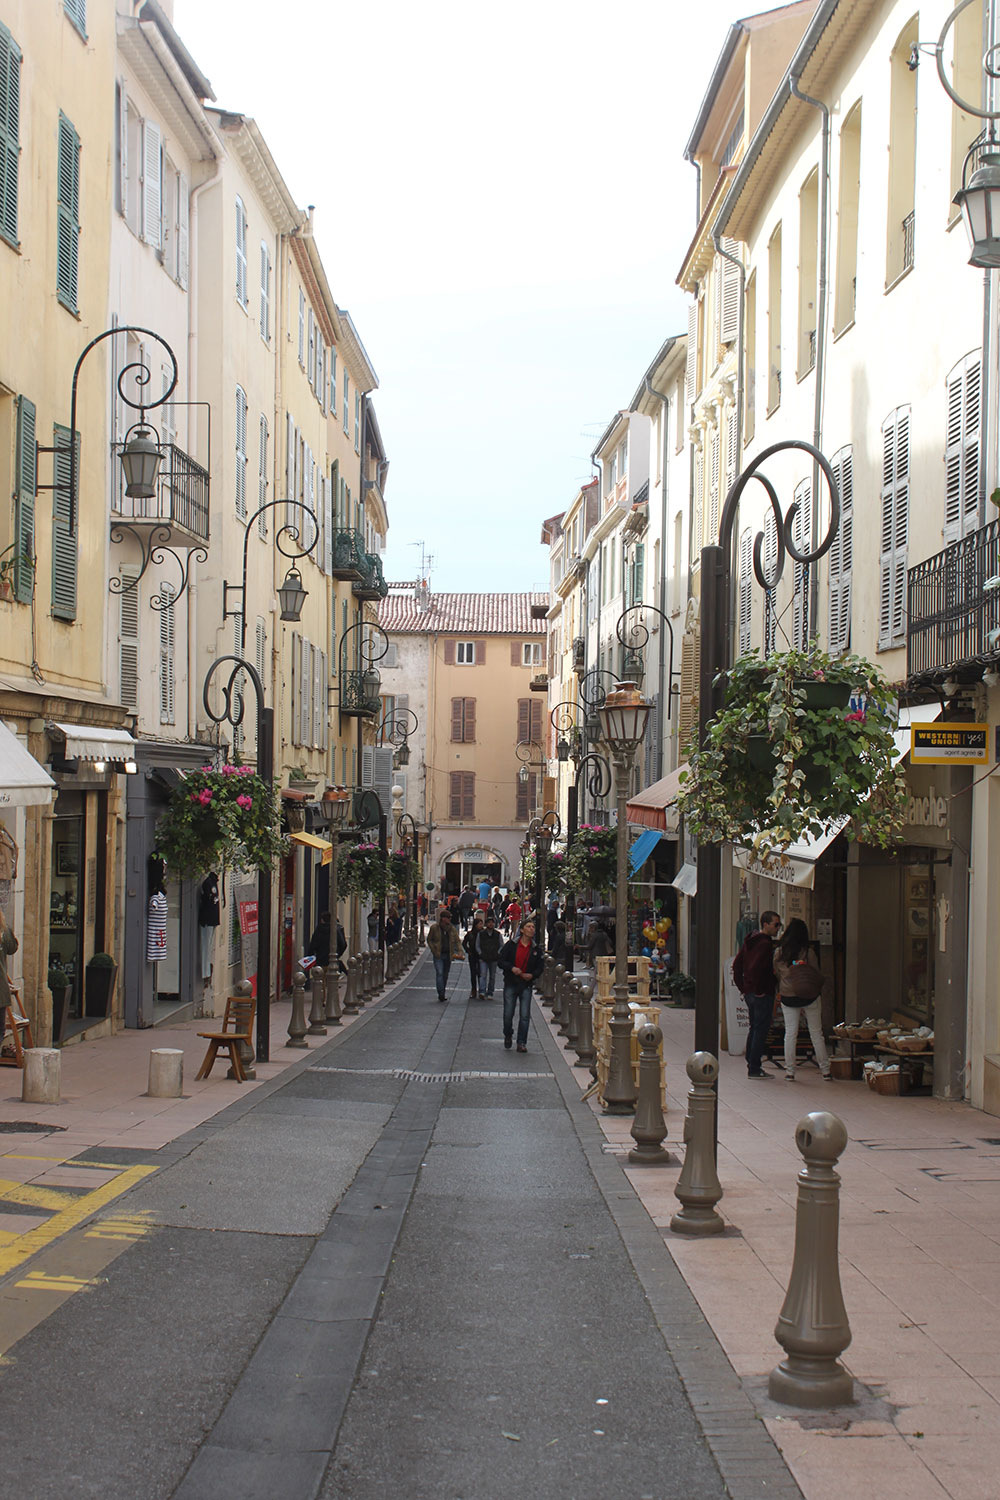 The streets of Antibes